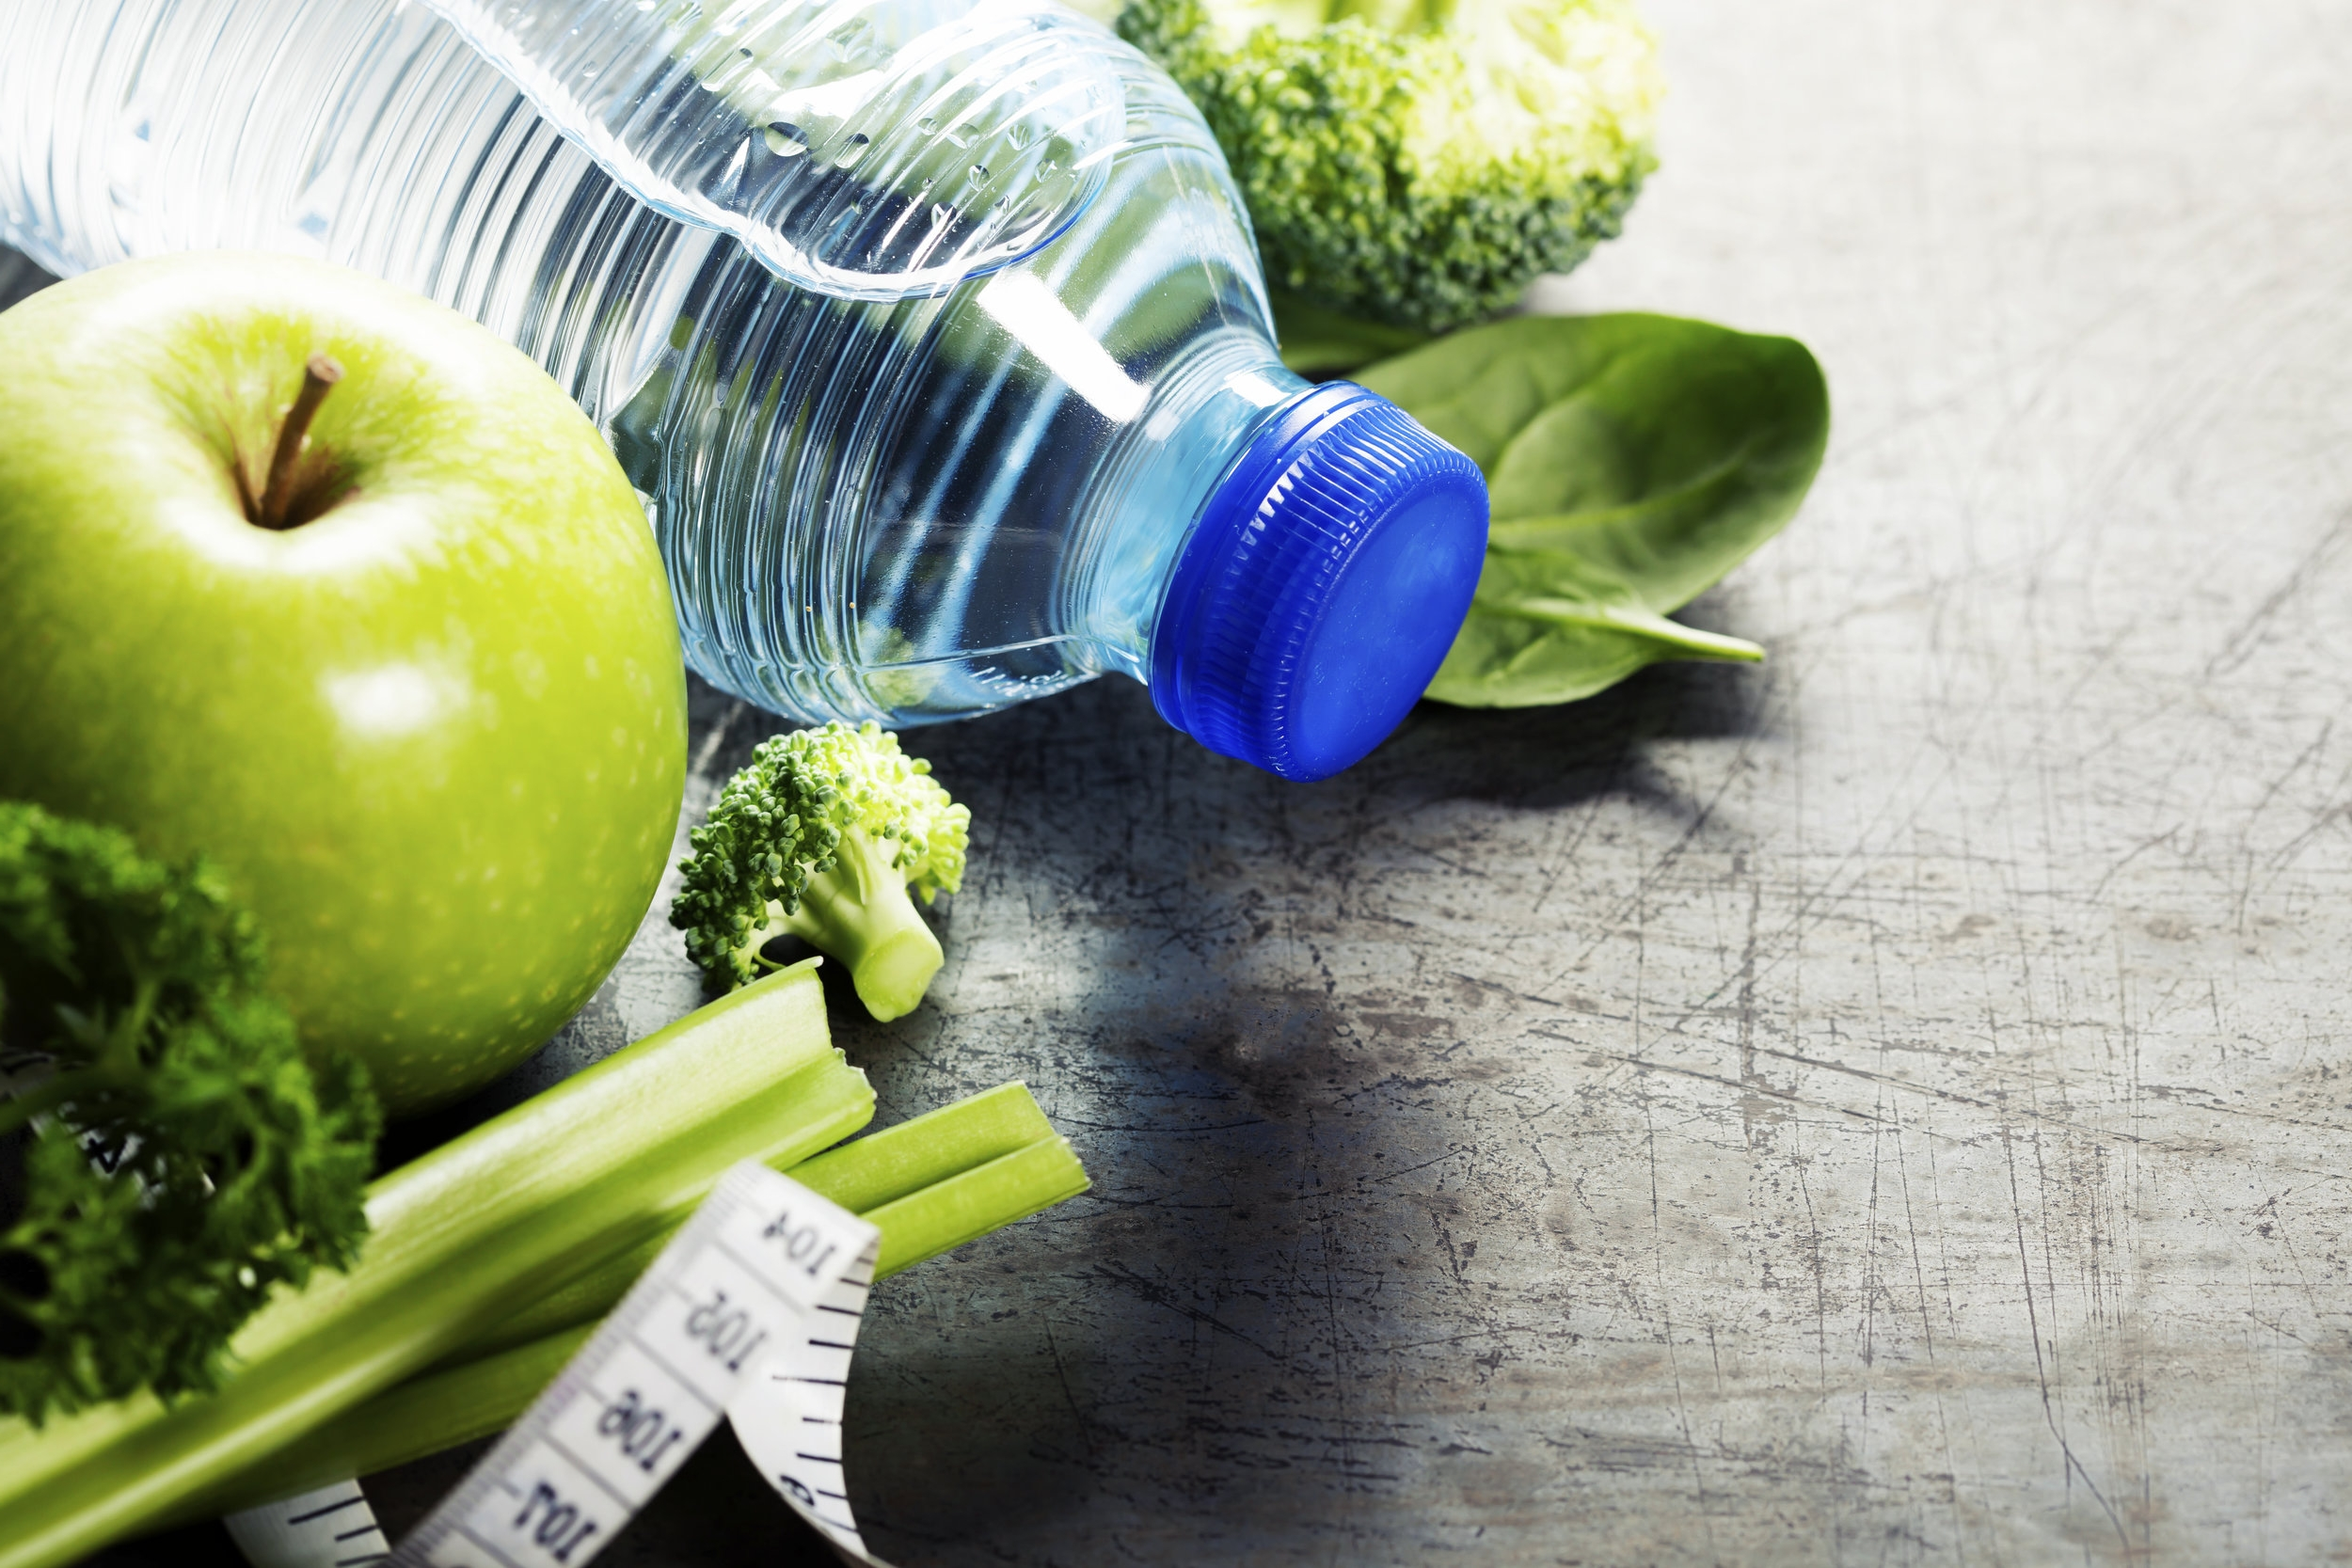 nutrition Coaching - You need to eat healthy to get healthy. We provide the guidance to help you reach your fitness and nutritional goals, working on your metabolism and your eating habits through a structured, online course. Provided through Precision Nutrition Certified Coach, Mark Rago.